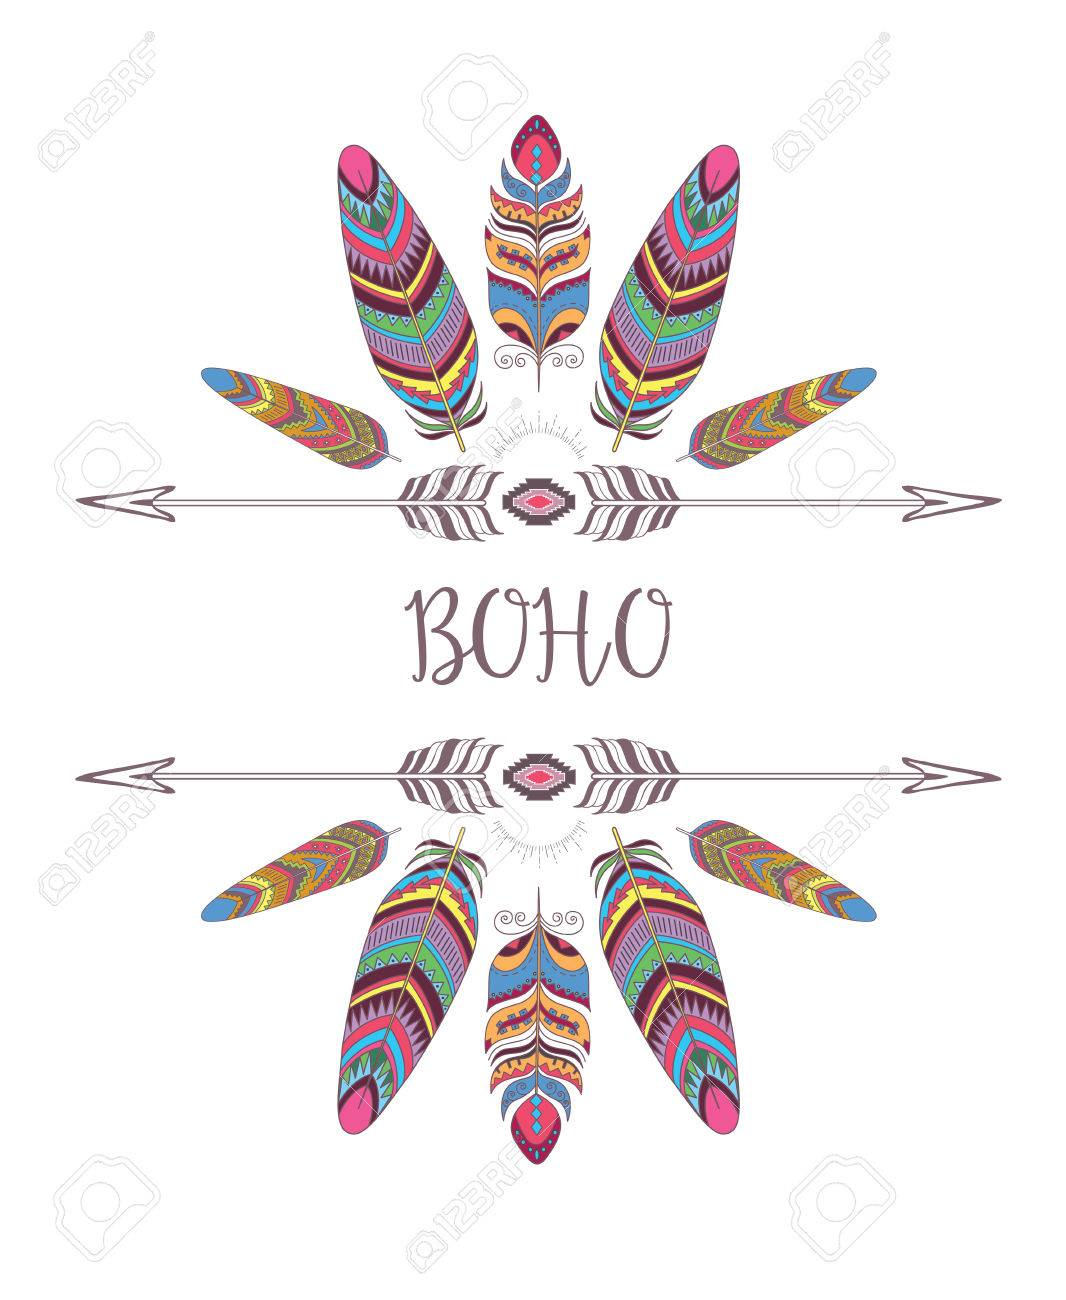 Boho Style Frame Border With Decorative Bird Feather Design For T Shirt